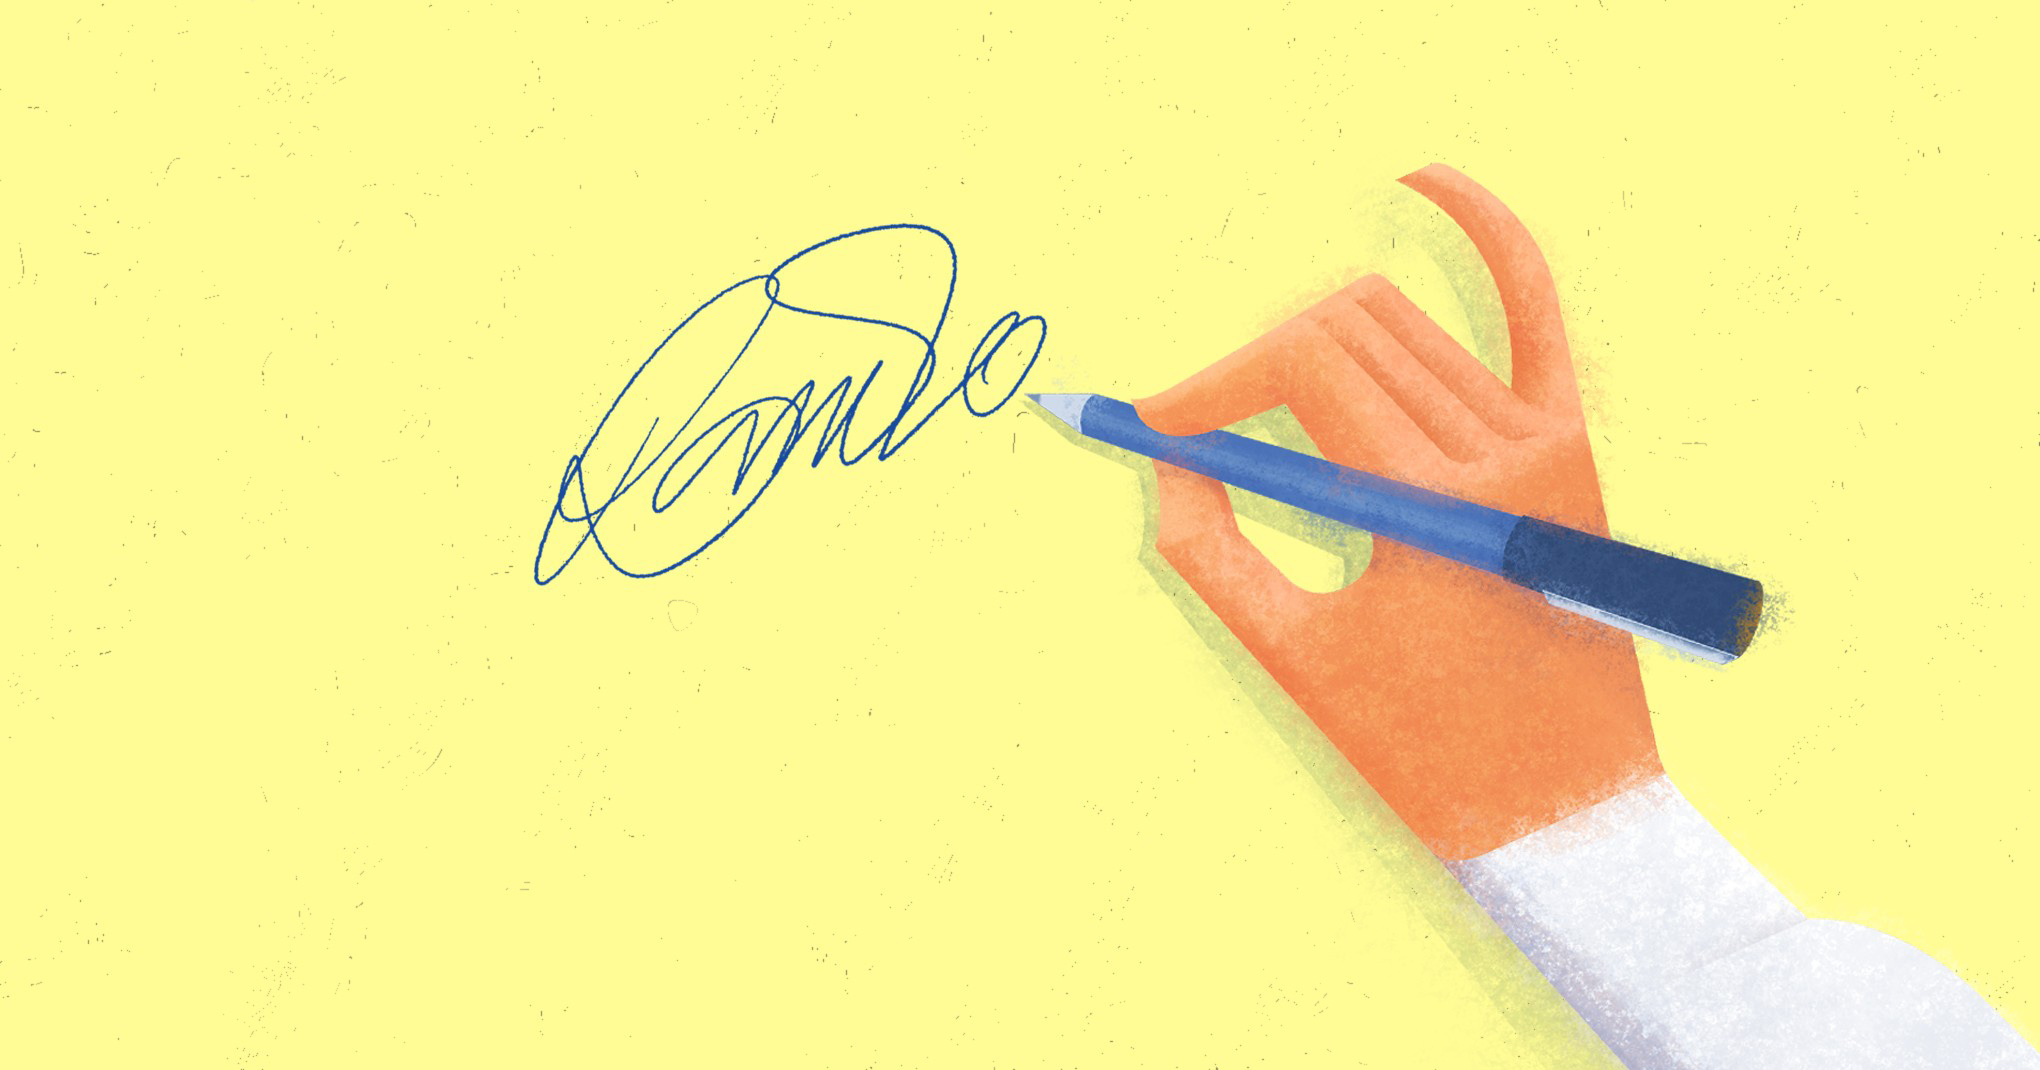 Digital-signature-101-What-is-it-and-how-does-it-work